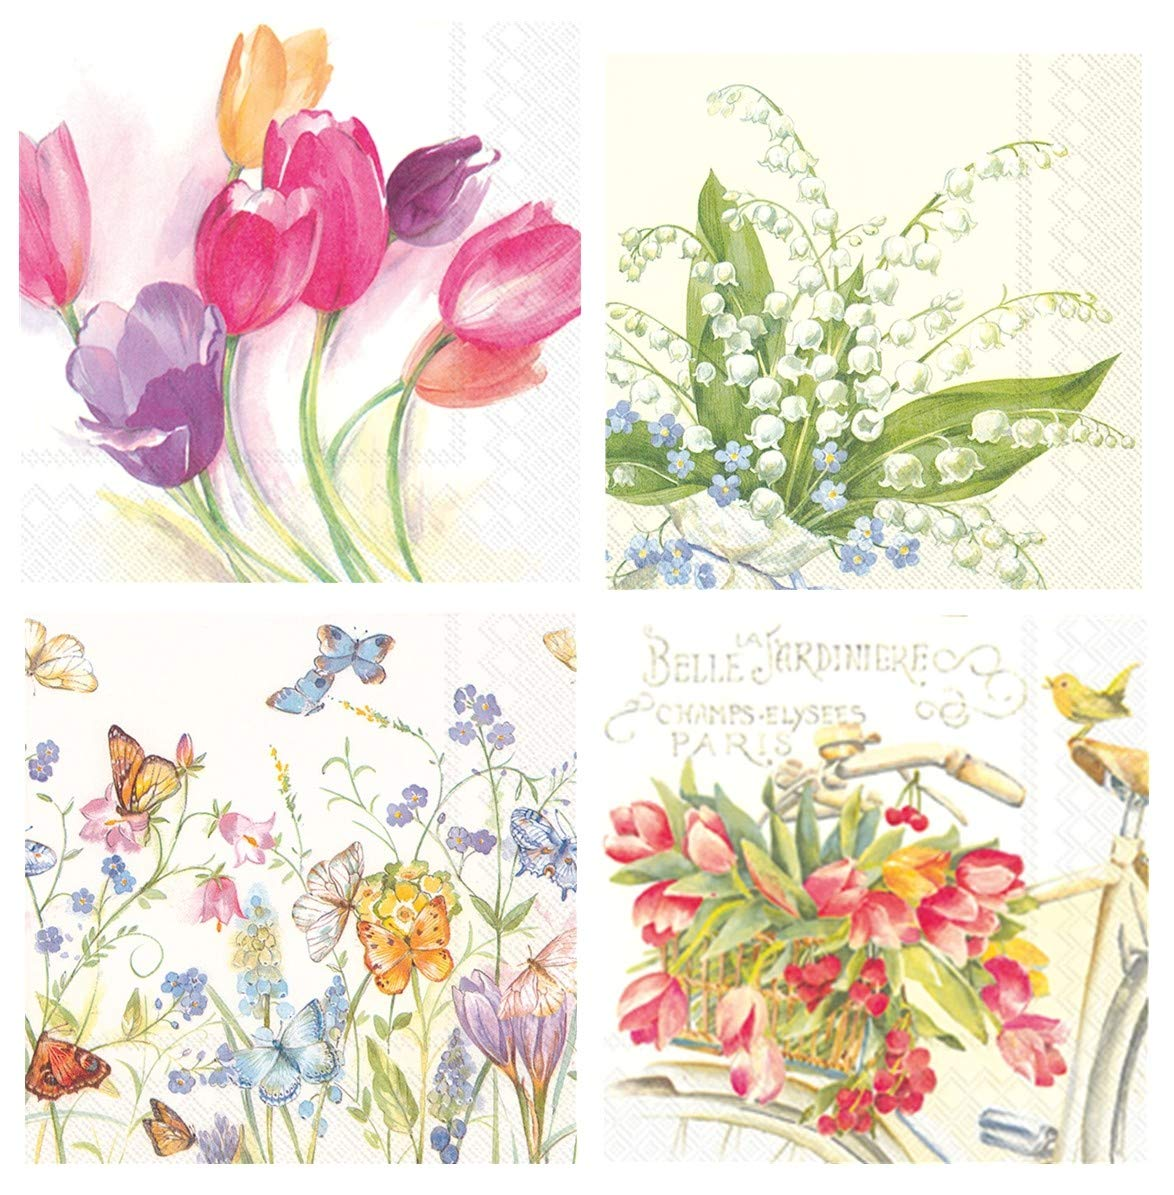 Boston International 20 Count 3-Ply Paper Floral Cocktail Napkins, Set of 4, Tulips, Lily of the Valley, Butterflies